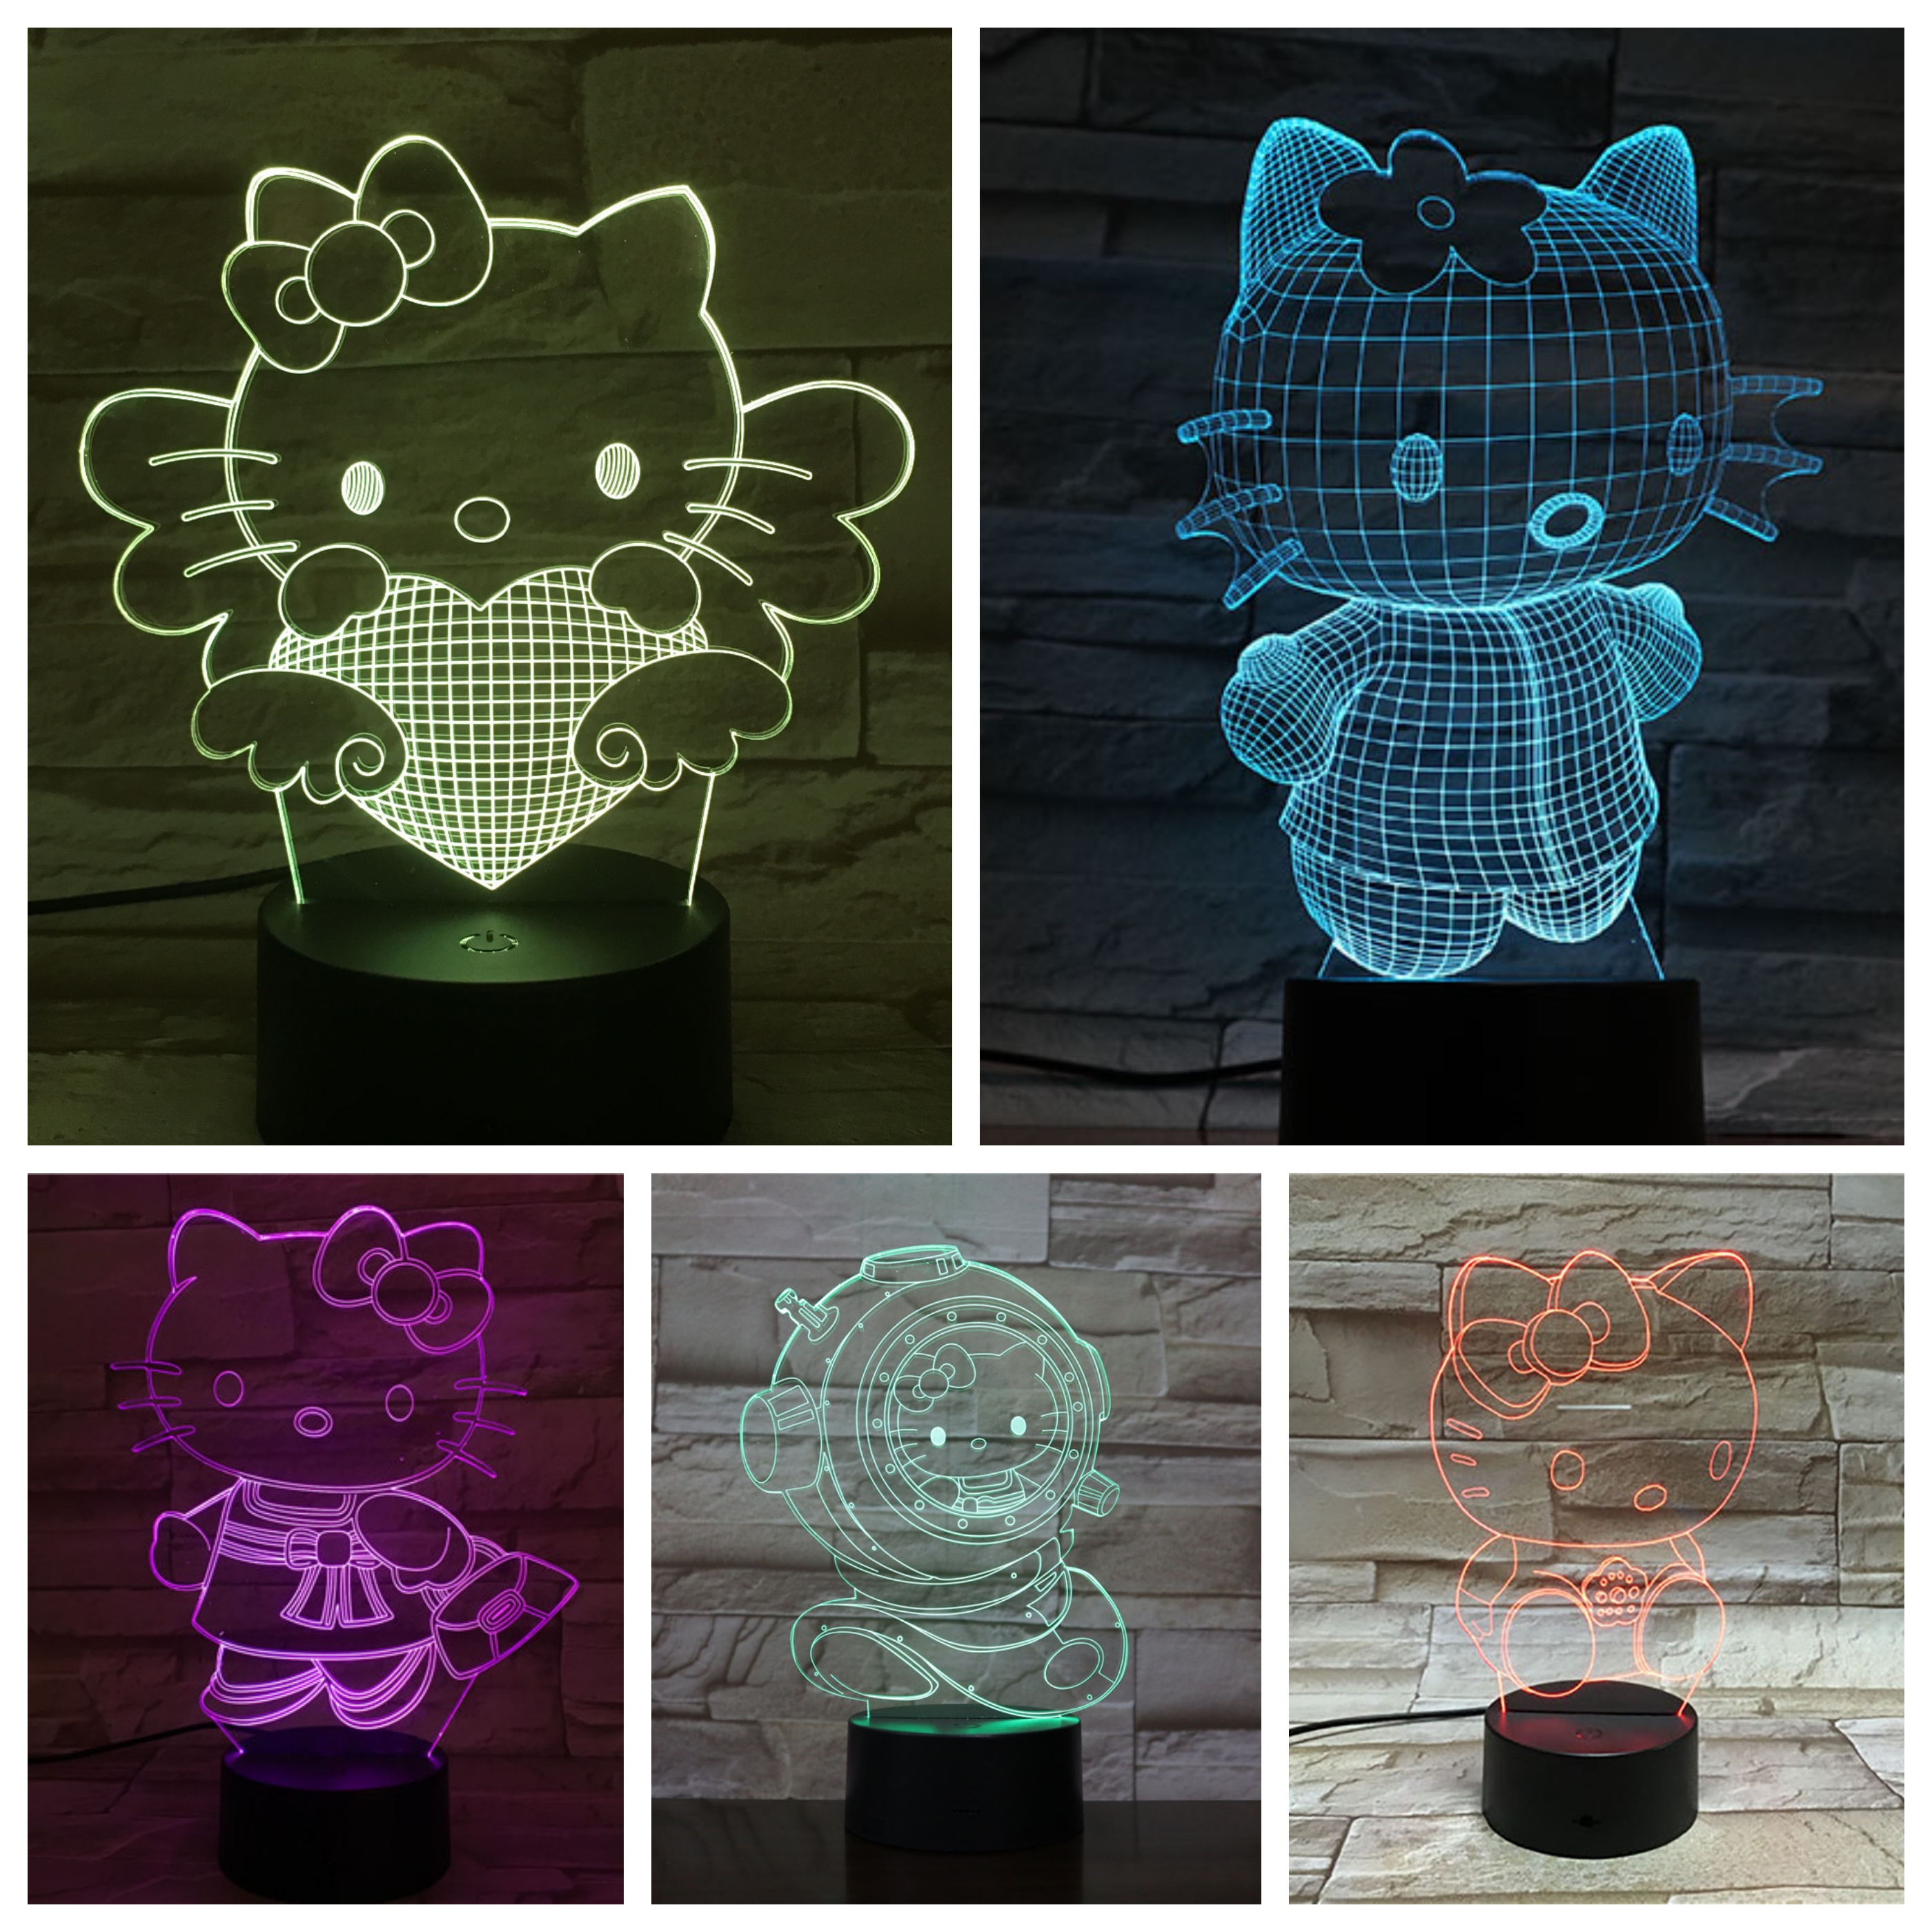 Hello Kitty Night Light LED Cartoon Lampara 3D Illusion Children Kids Gift Decorative Lights Animal Cat Desk lamp bedside DecorHello Kitty Night Light LED Cartoon Lampara 3D Illusion Children Kids Gift Decorative Lights Animal Cat Desk lamp bedside Decor